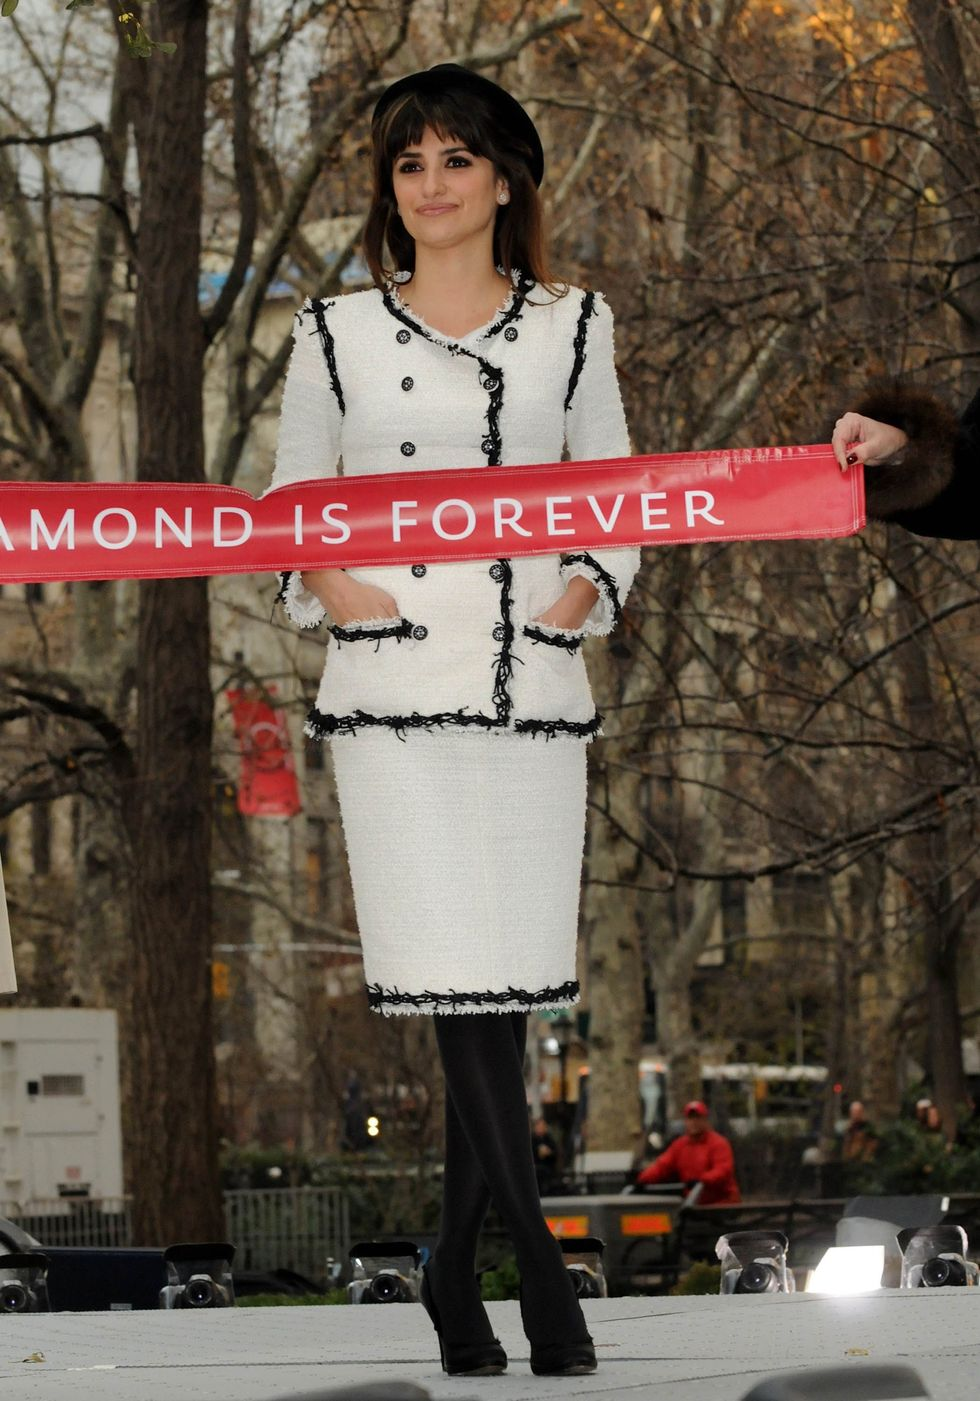 penelope-cruz-a-diamond-is-forever-unbreakable-kiss-mistletoe-installation-in-new-york-15